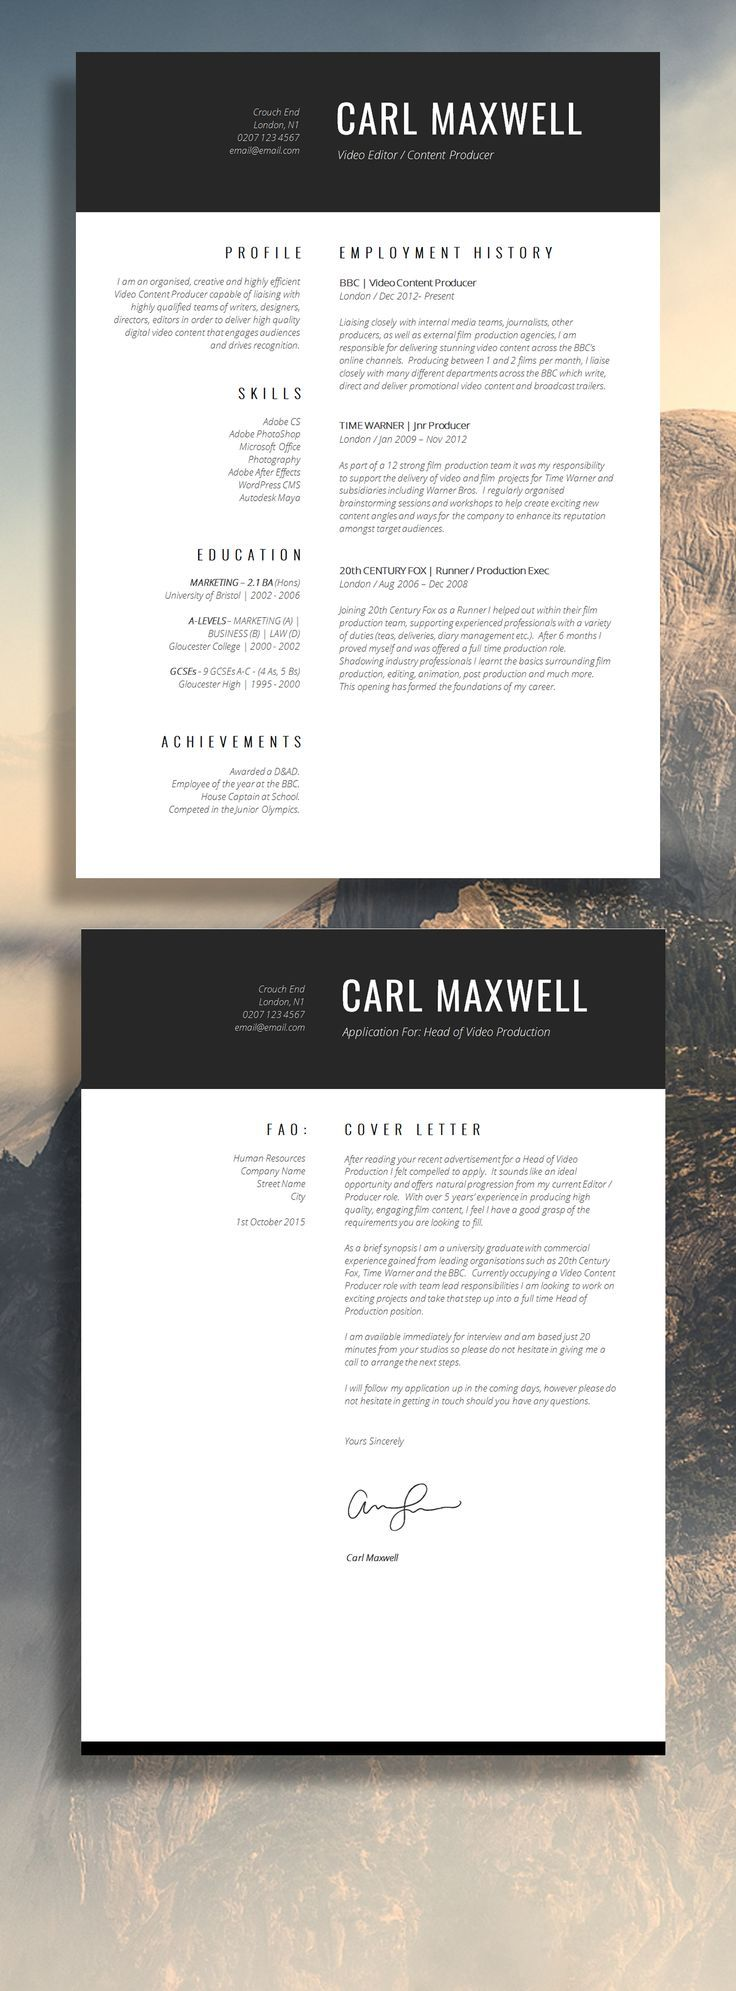 best ideas about professional resume template professional resume template cv template resume advice cover letter word mac or pc instant digital fair